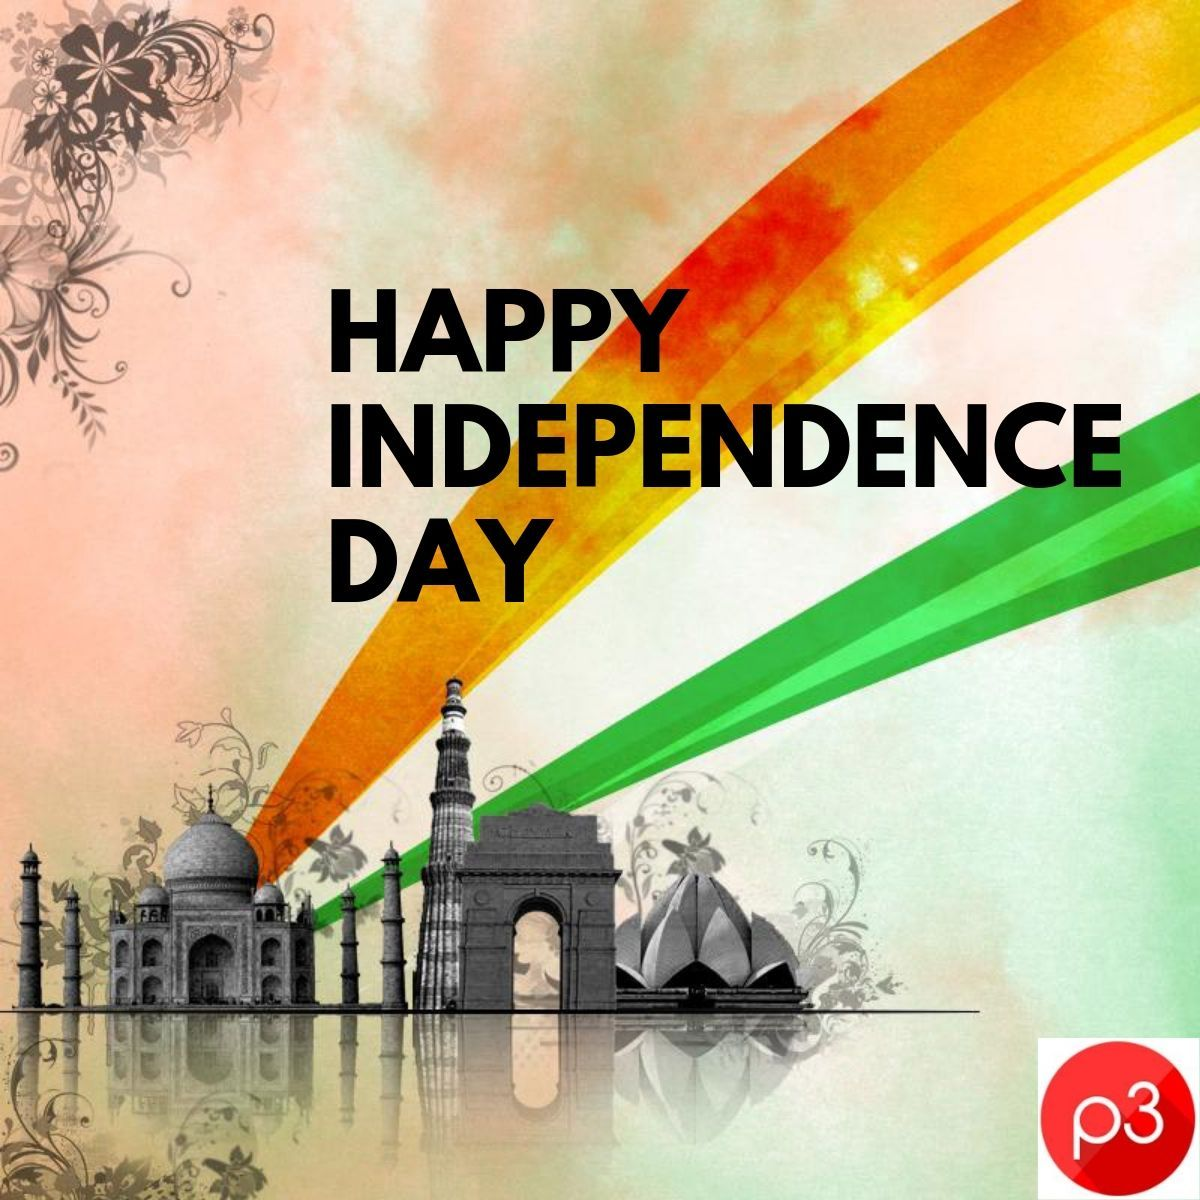 Today, India Celebrates its 73rd Independence Day, We